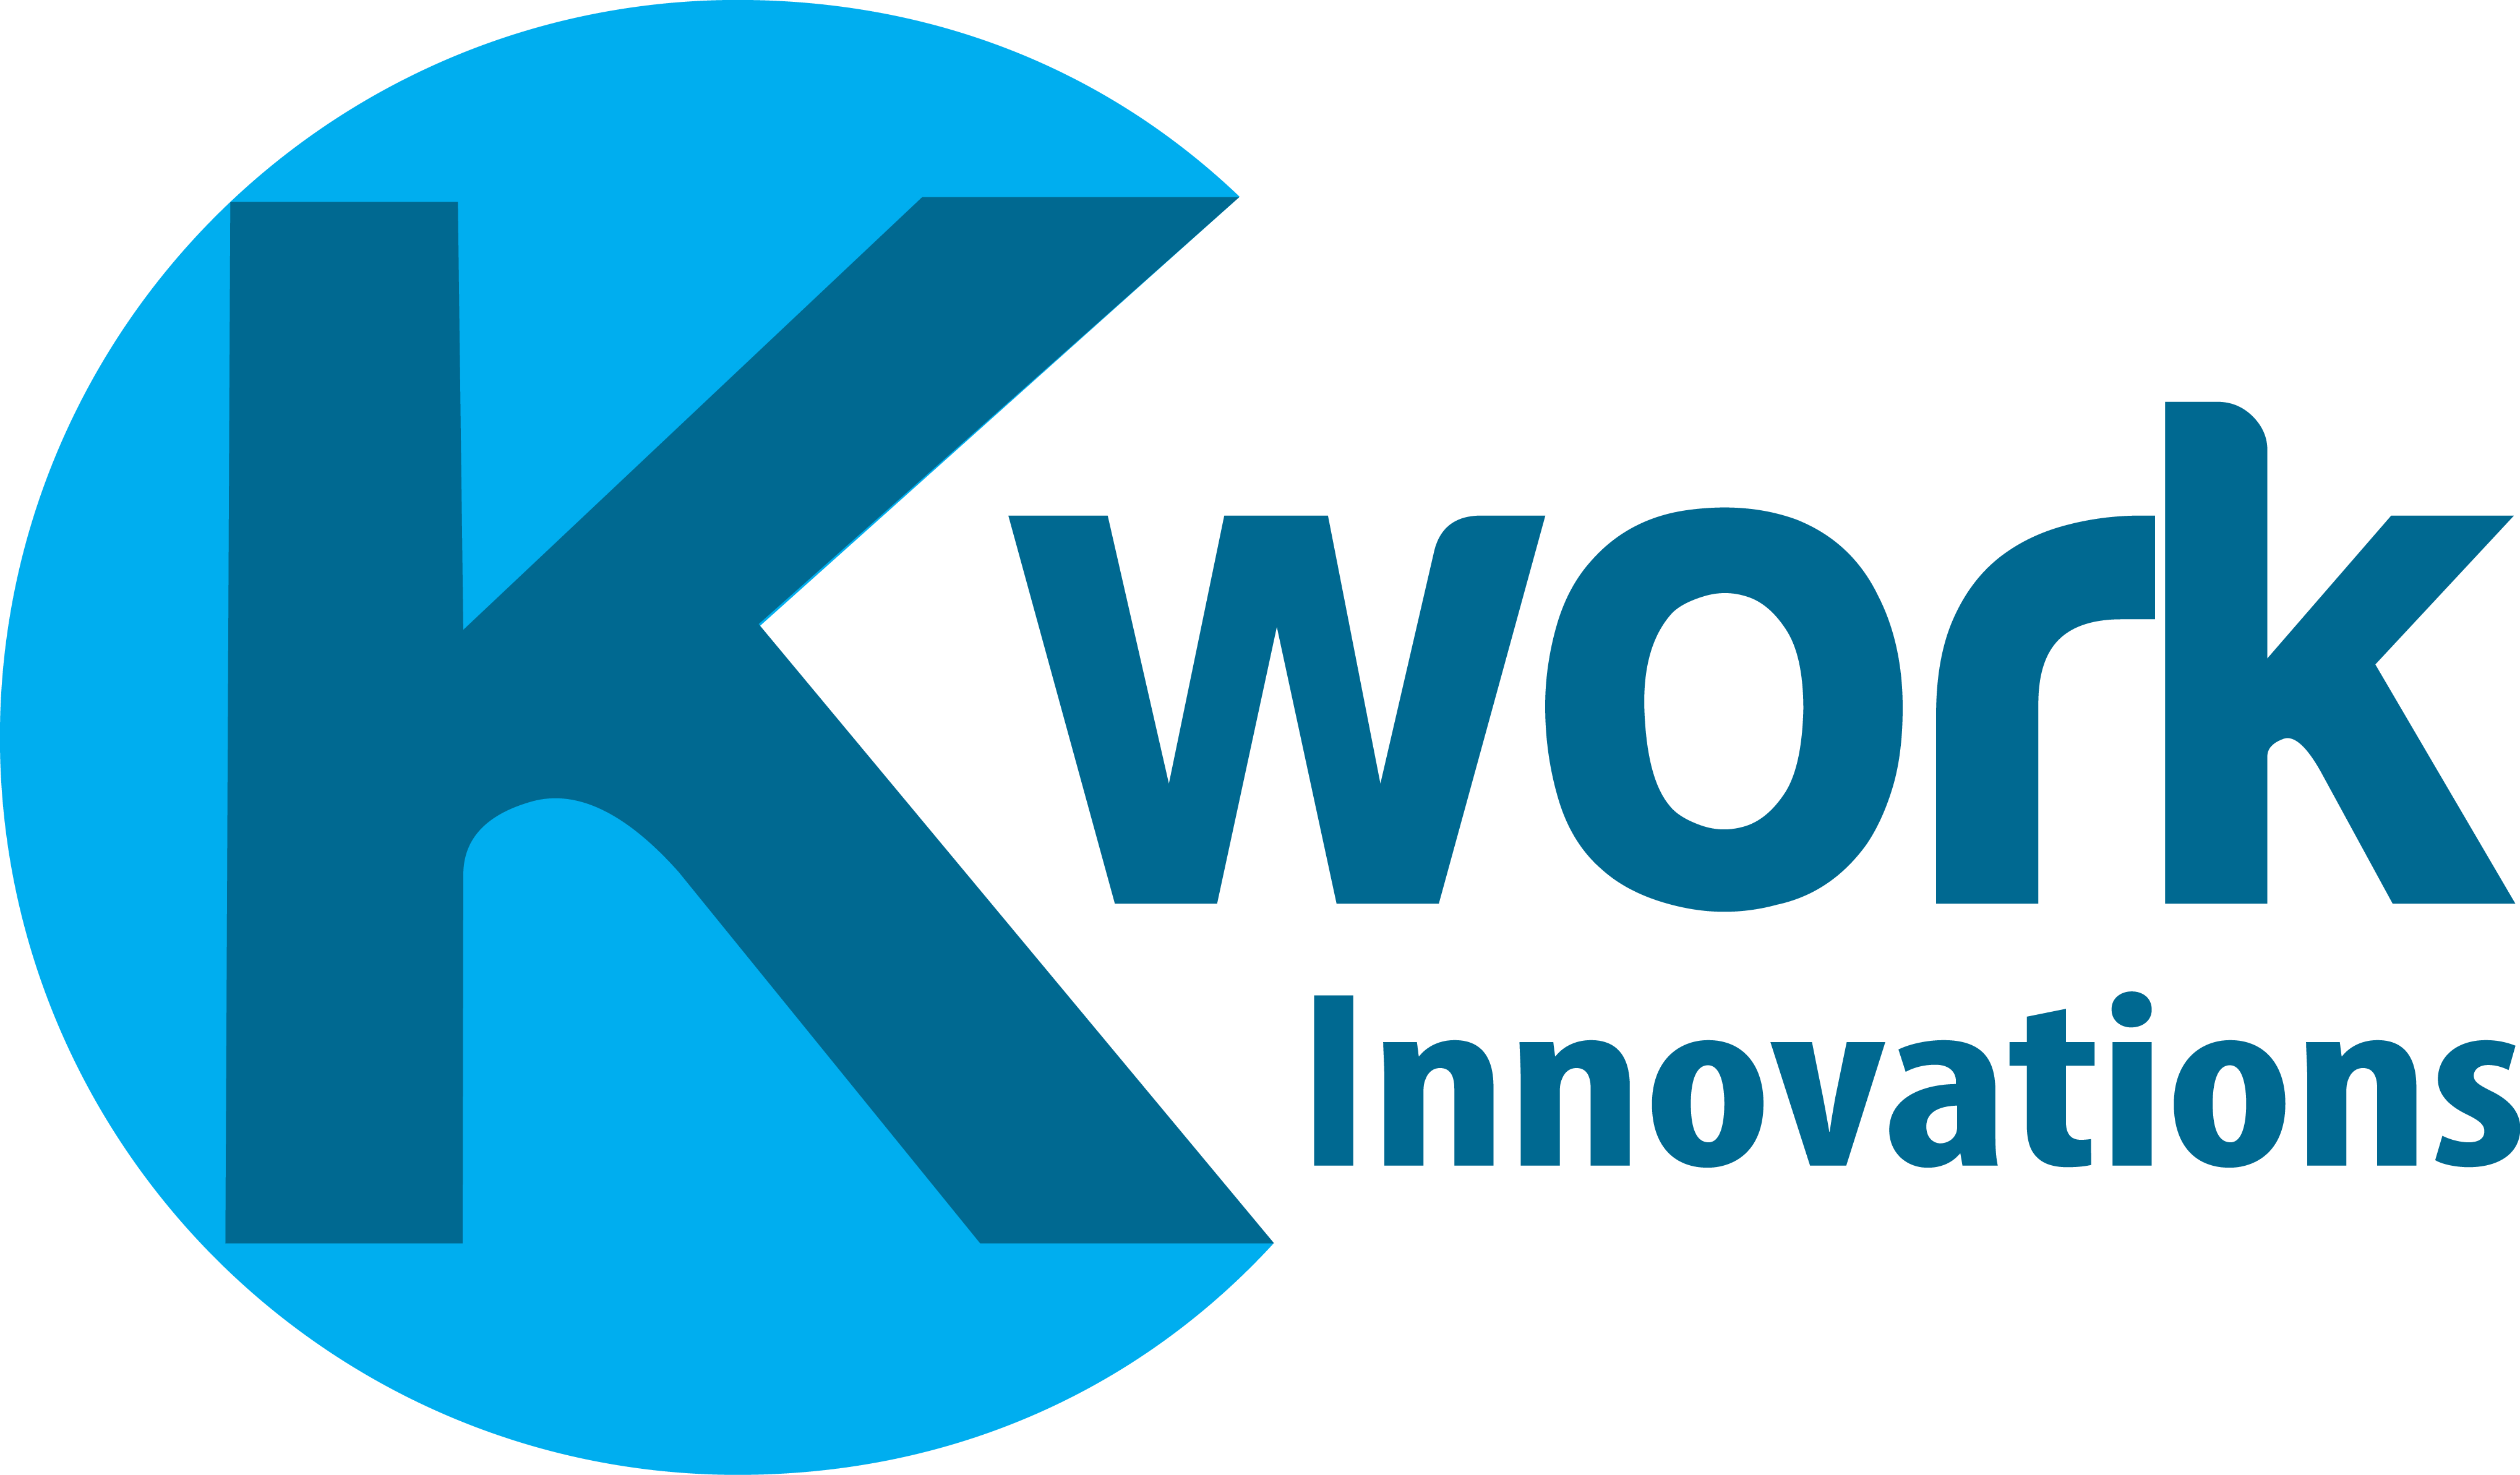 Kwork Innovations